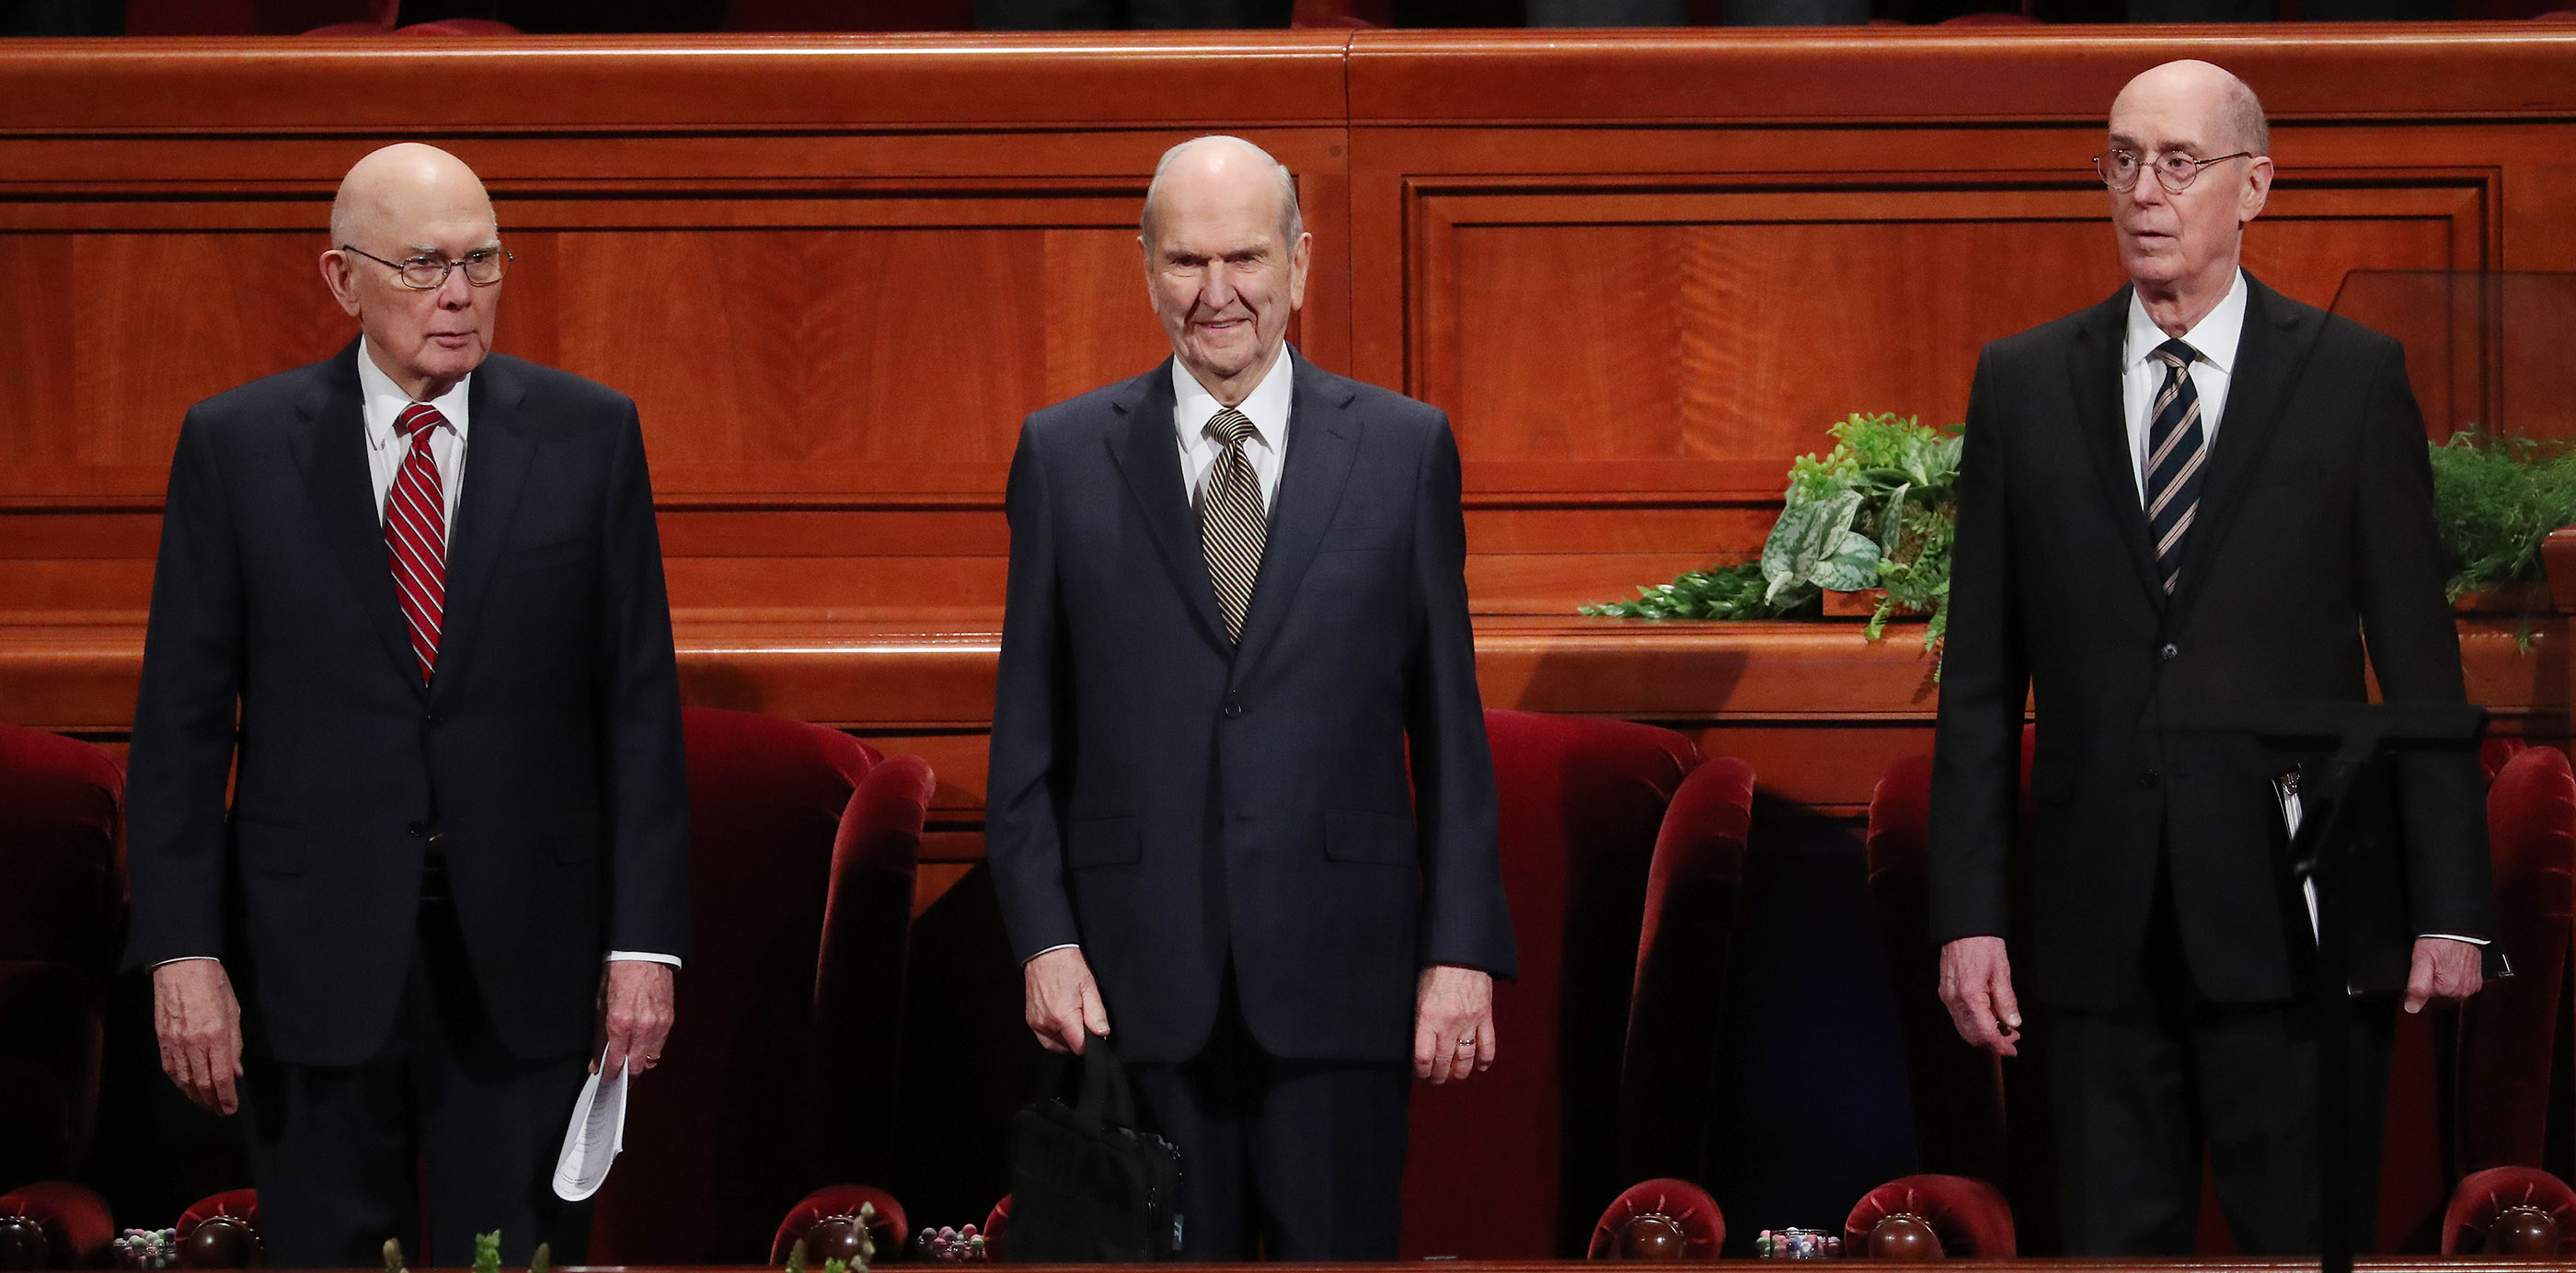 President Russell M. Nelson of The Church of Jesus Christ of Latter-day Saints, center, and his counselors, President Dallin H. Oaks, first counselor in the First Presidency, left, and President Henry B. Eyring, second counselor in the First Presidency, right, enter the Conference Center prior to the 189th Annual General Conference of The Church of Jesus Christ of Latter-day Saints in Salt Lake City on Sunday, April 7, 2019.